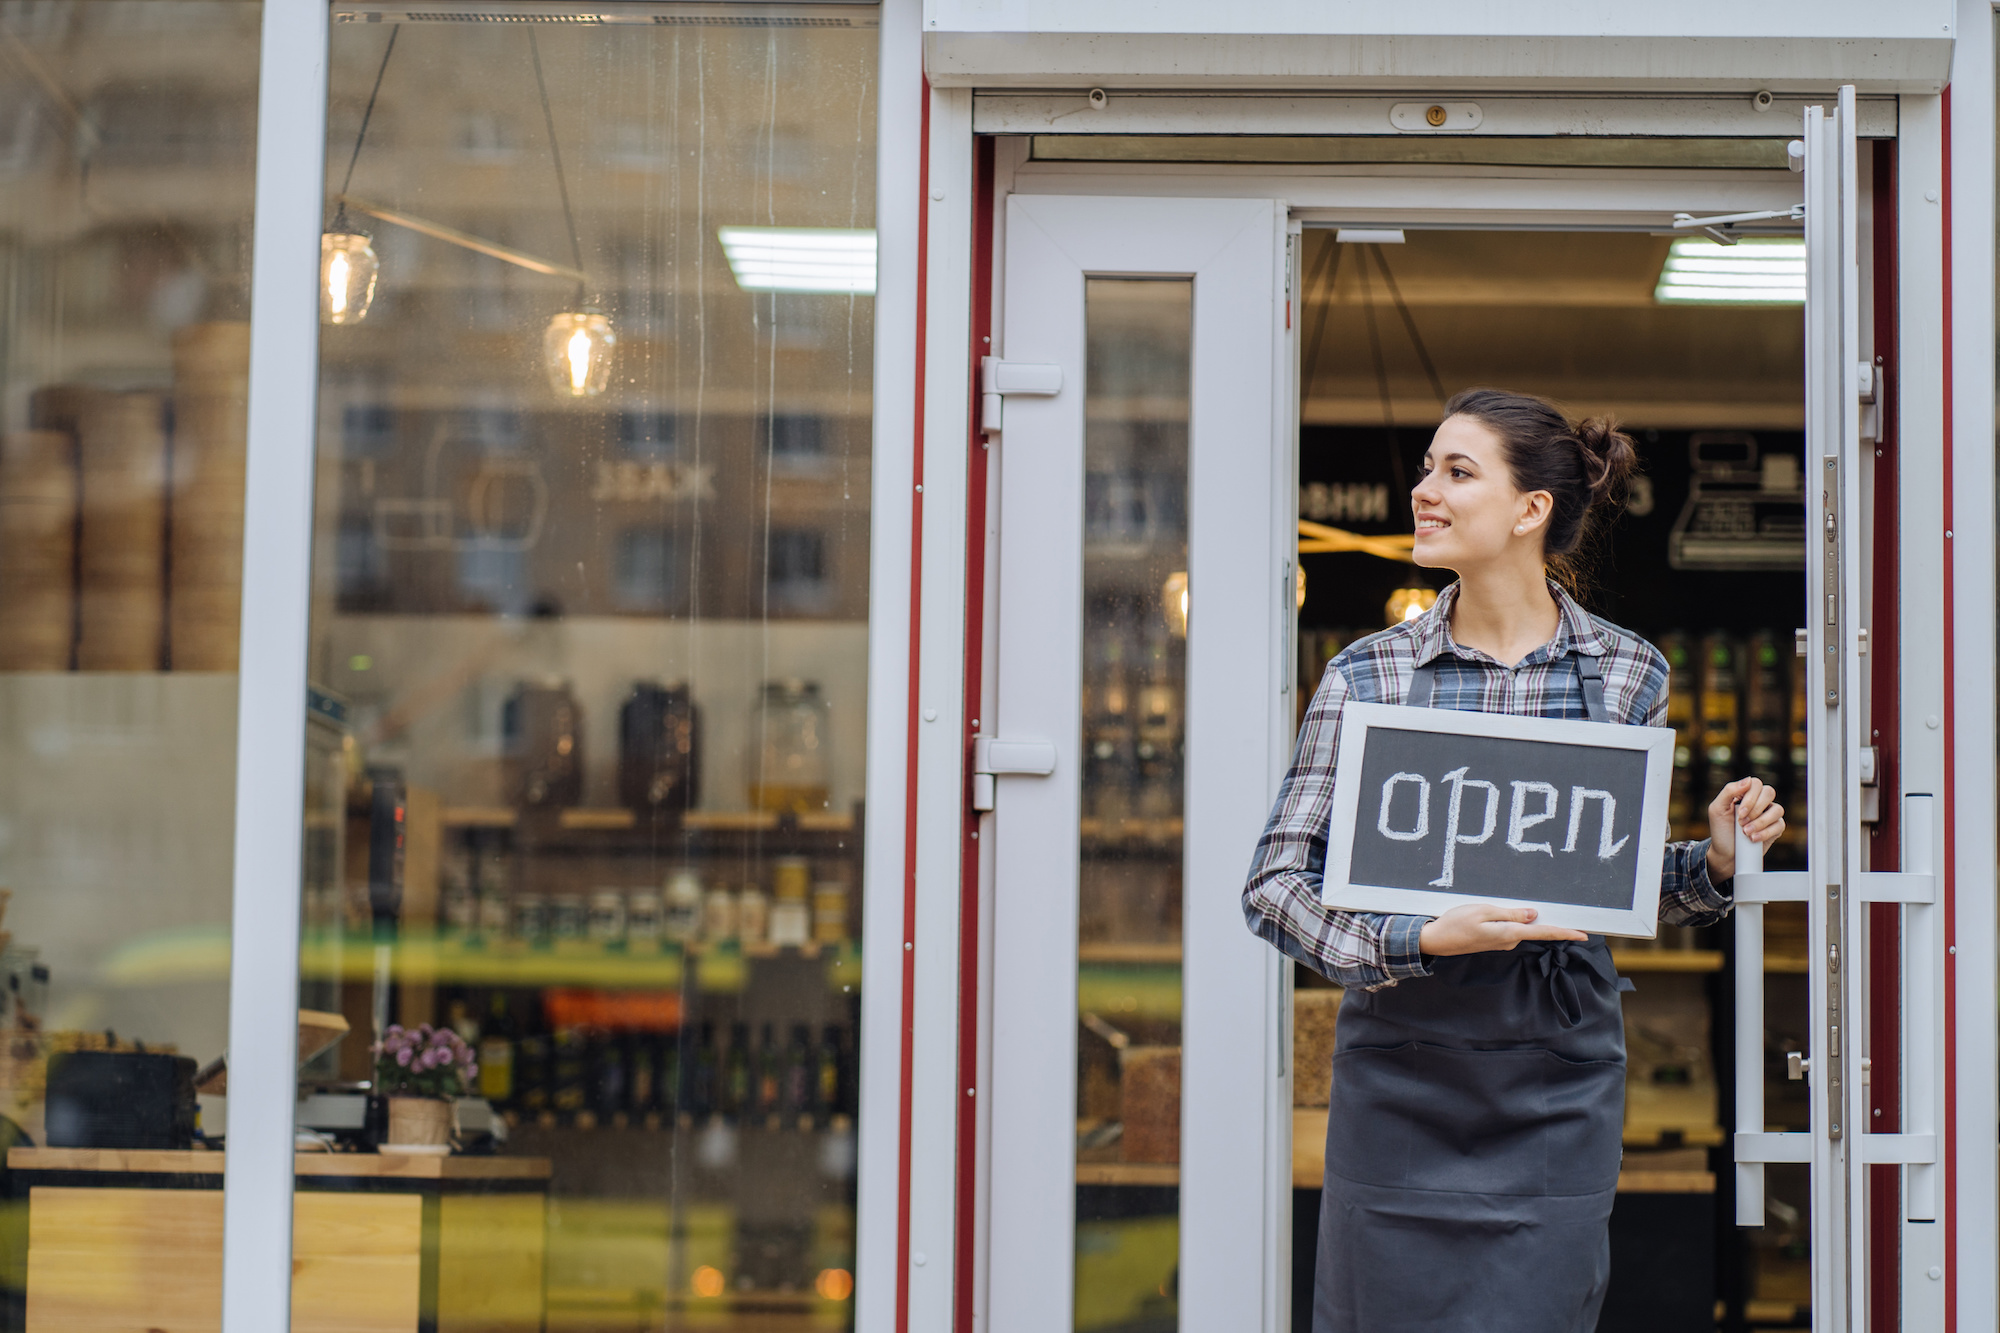 woman holding open sign in shop front uses Liberty Urgent Care Covid-19 Return to Work services